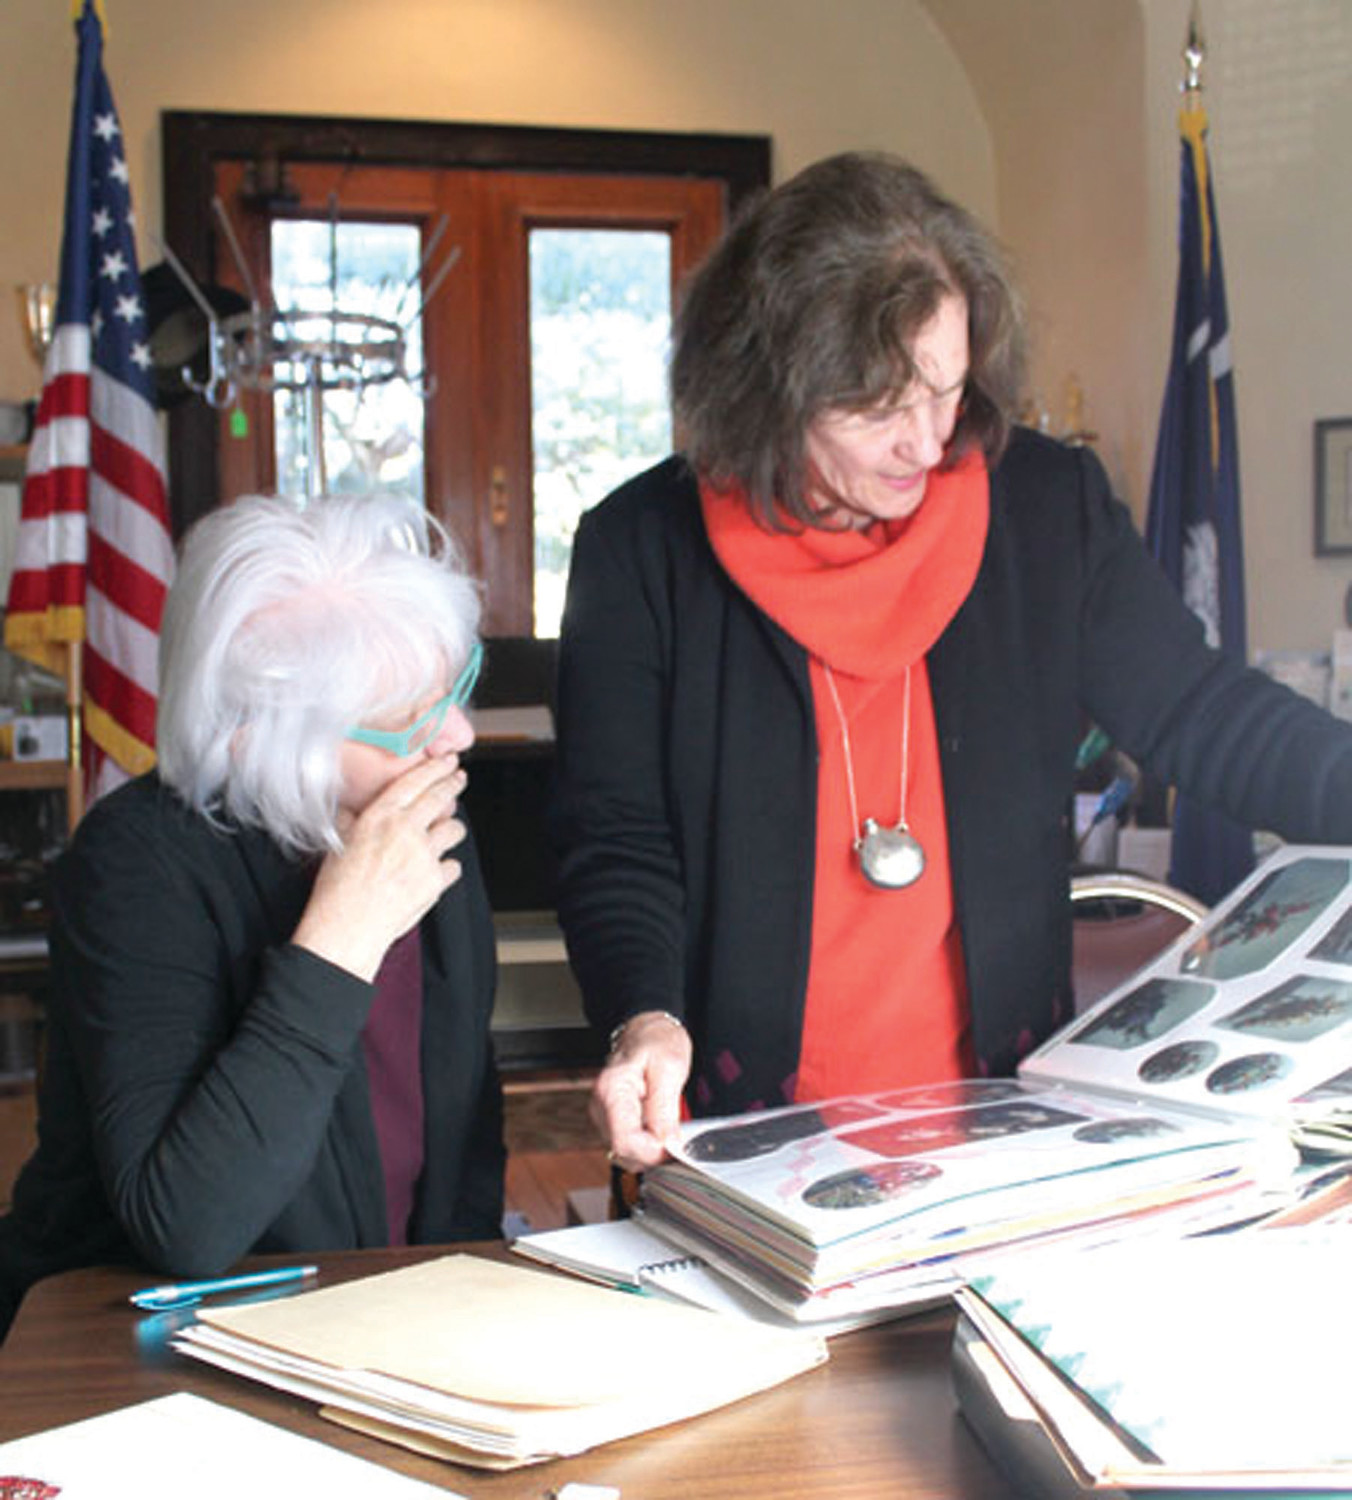 SHARRON HALEY / SPECIAL TO THE SUMTER ITEMGinny Honea, left, president of the Azalea Garden Club of Manning, and Marie Land, a former president and member of the club, sort through albums teeming with club pictures and history that the club donated to the Clarendon County Archives. Club members are planning a private celebration of the club's 70th anniversary in March at the exact spot where the club was founded seven decades ago on the front porch of the Weinberg home on North Brooks Street that now belongs to Julian and Jessica Weinberg.